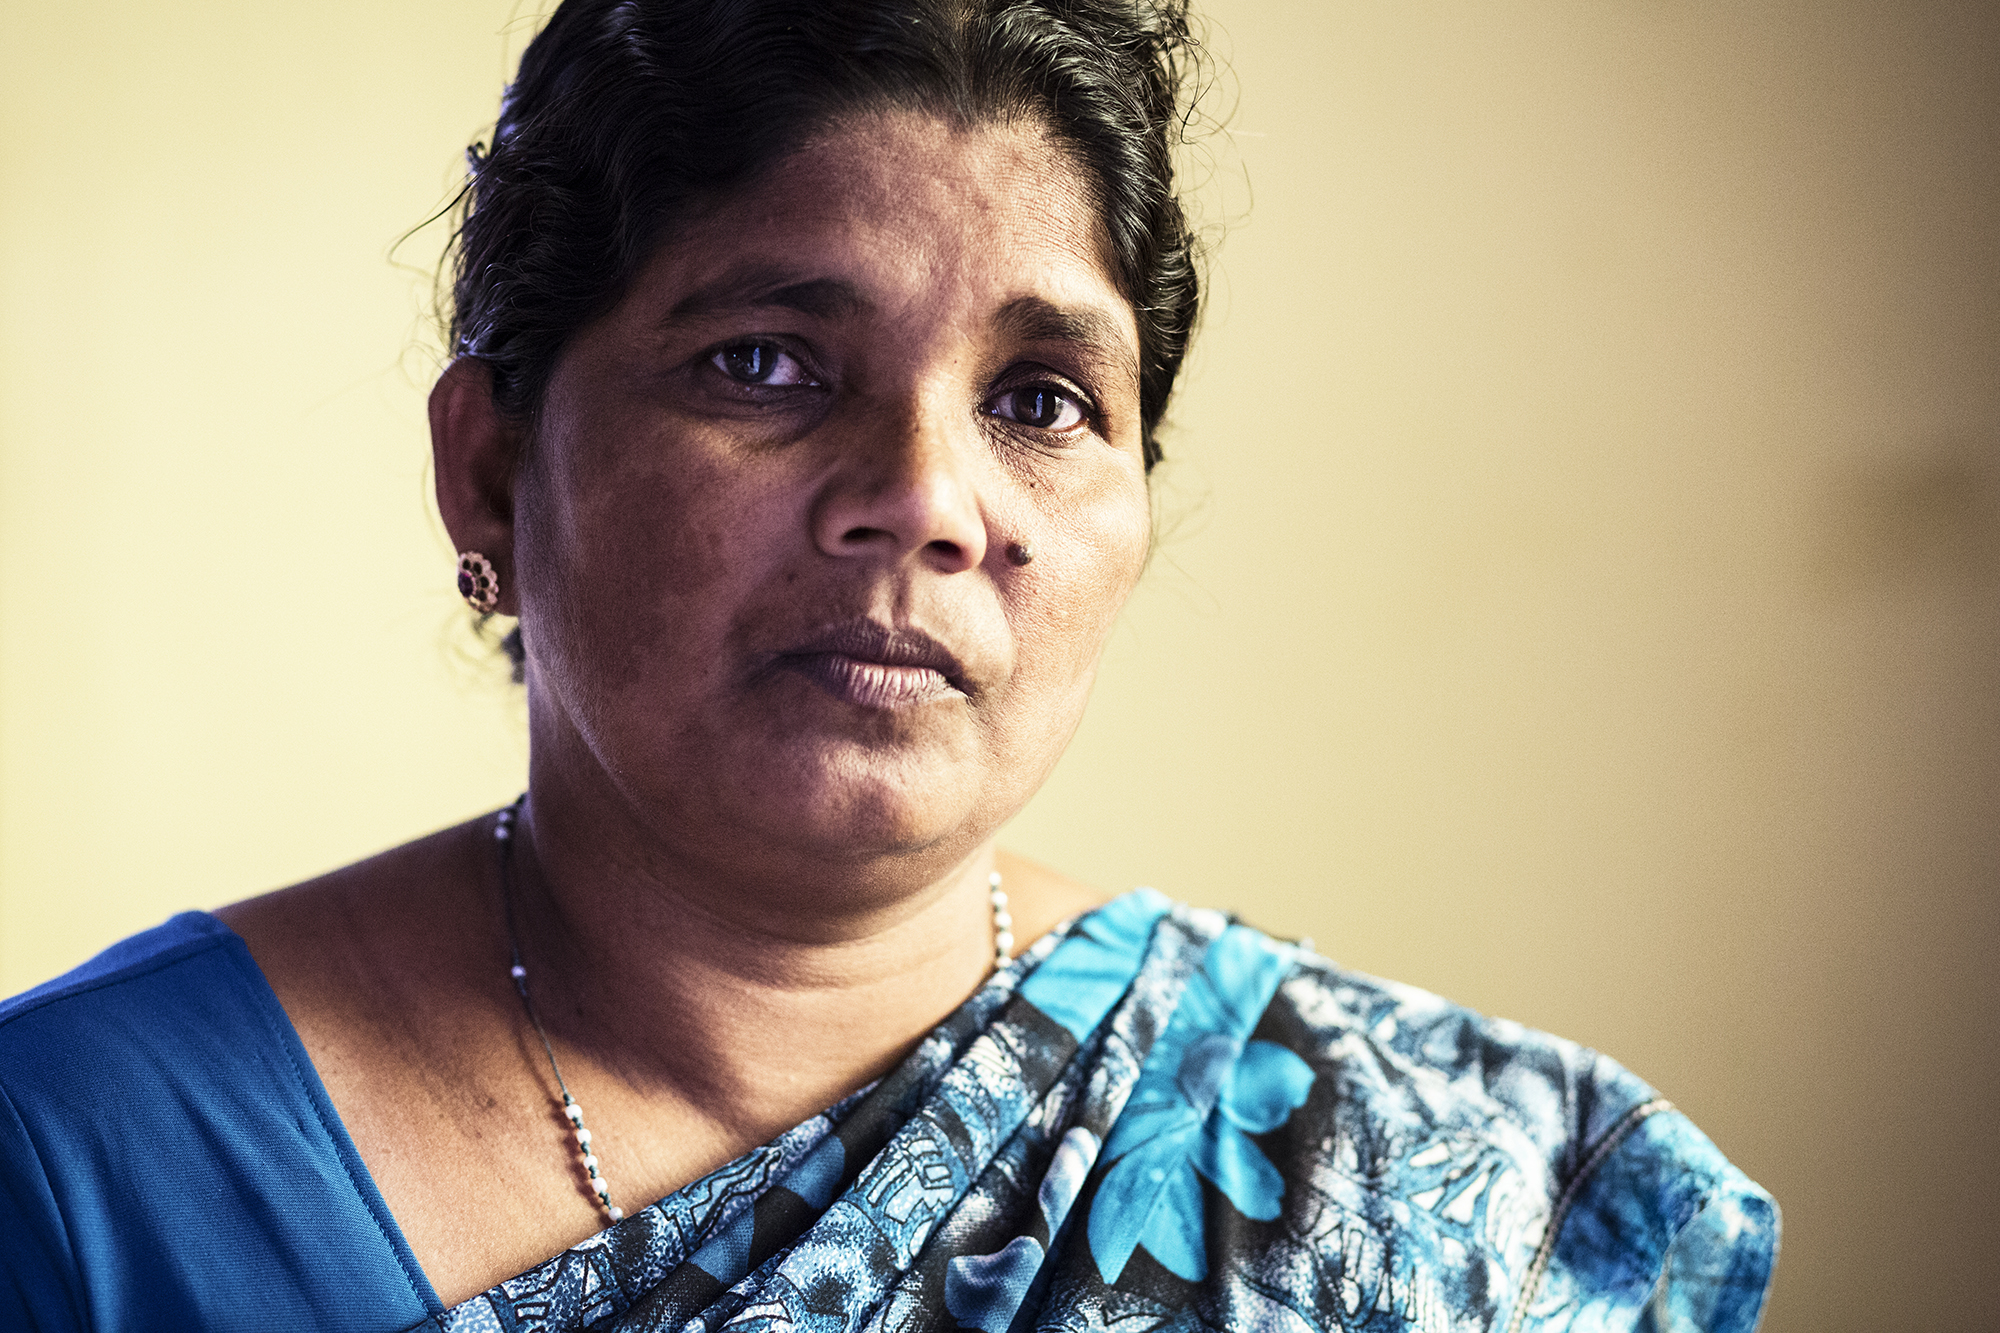 """Immaculata, 47. Immaculata's oldest son was killed in the war in 2006. A year later, the army came to her home and took her younger son upon suspicion that he was involved in the LTTE. He spent several years imprisoned until he falsely confessed in 2014 in order to be released.Since his release from prison, she has been caring for him.  """"He's home with me but he's very ill. He can't sit or sleep properly and he's got psychological problems. He's afraid someone might come and take him to prison again. He's just scared."""""""